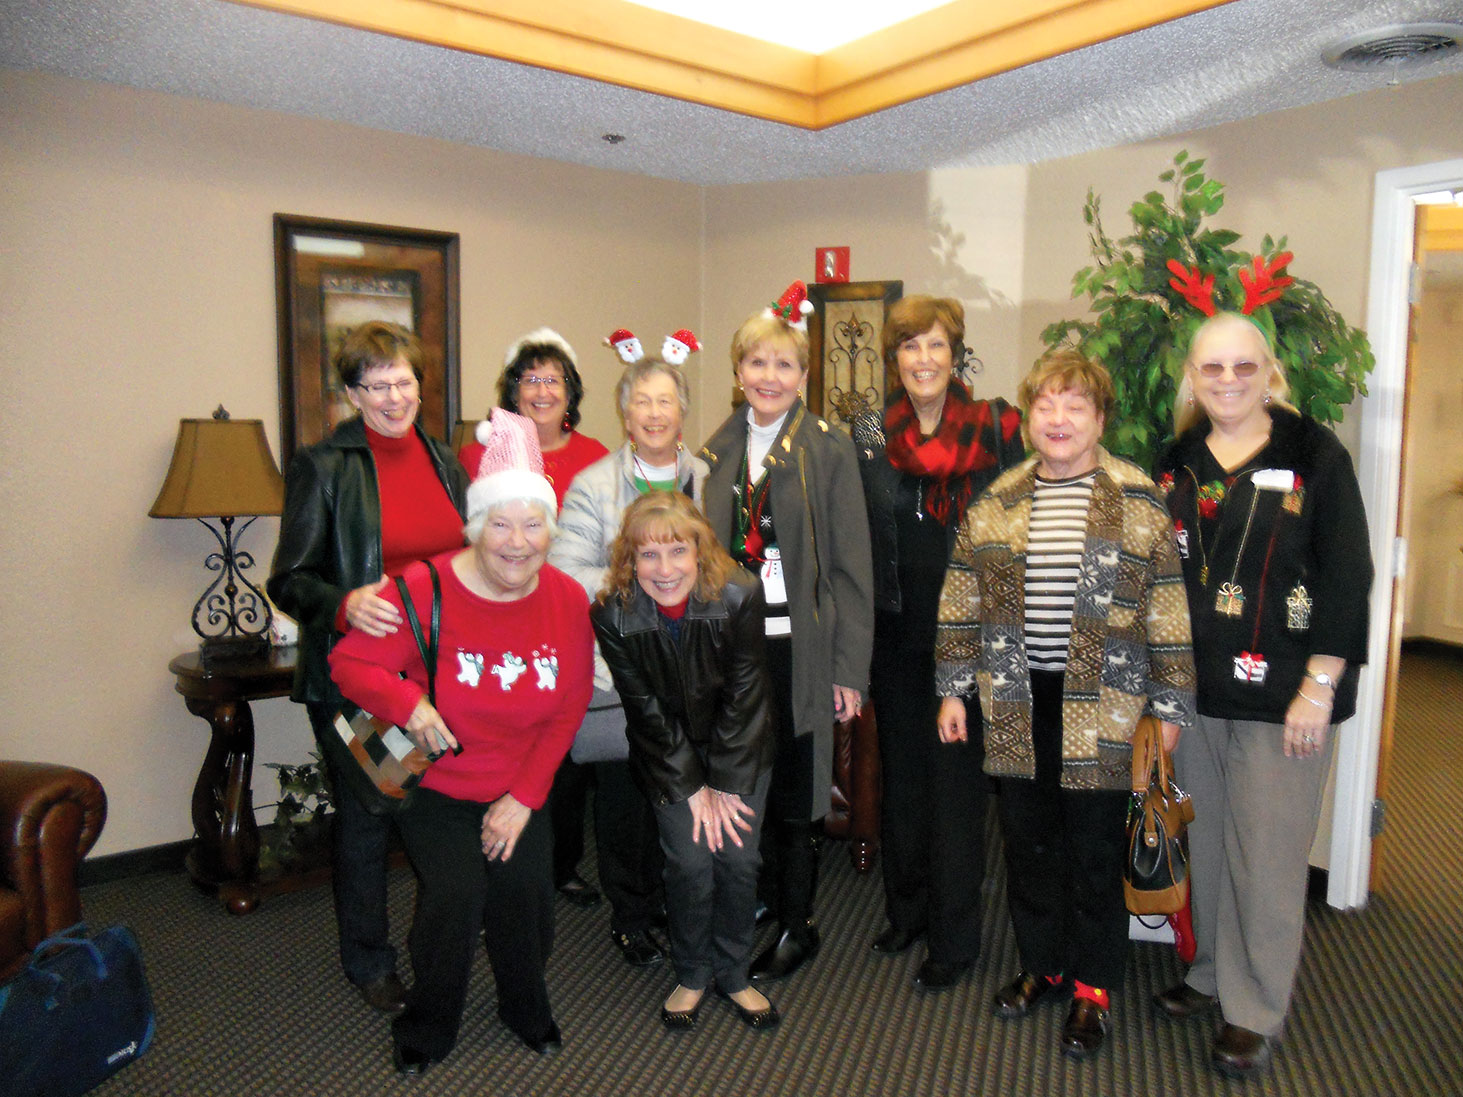 Rockin' Red Ranchers sang Christmas Carols and baked cookies for the residents of Denton Rehab and Nursing Center.